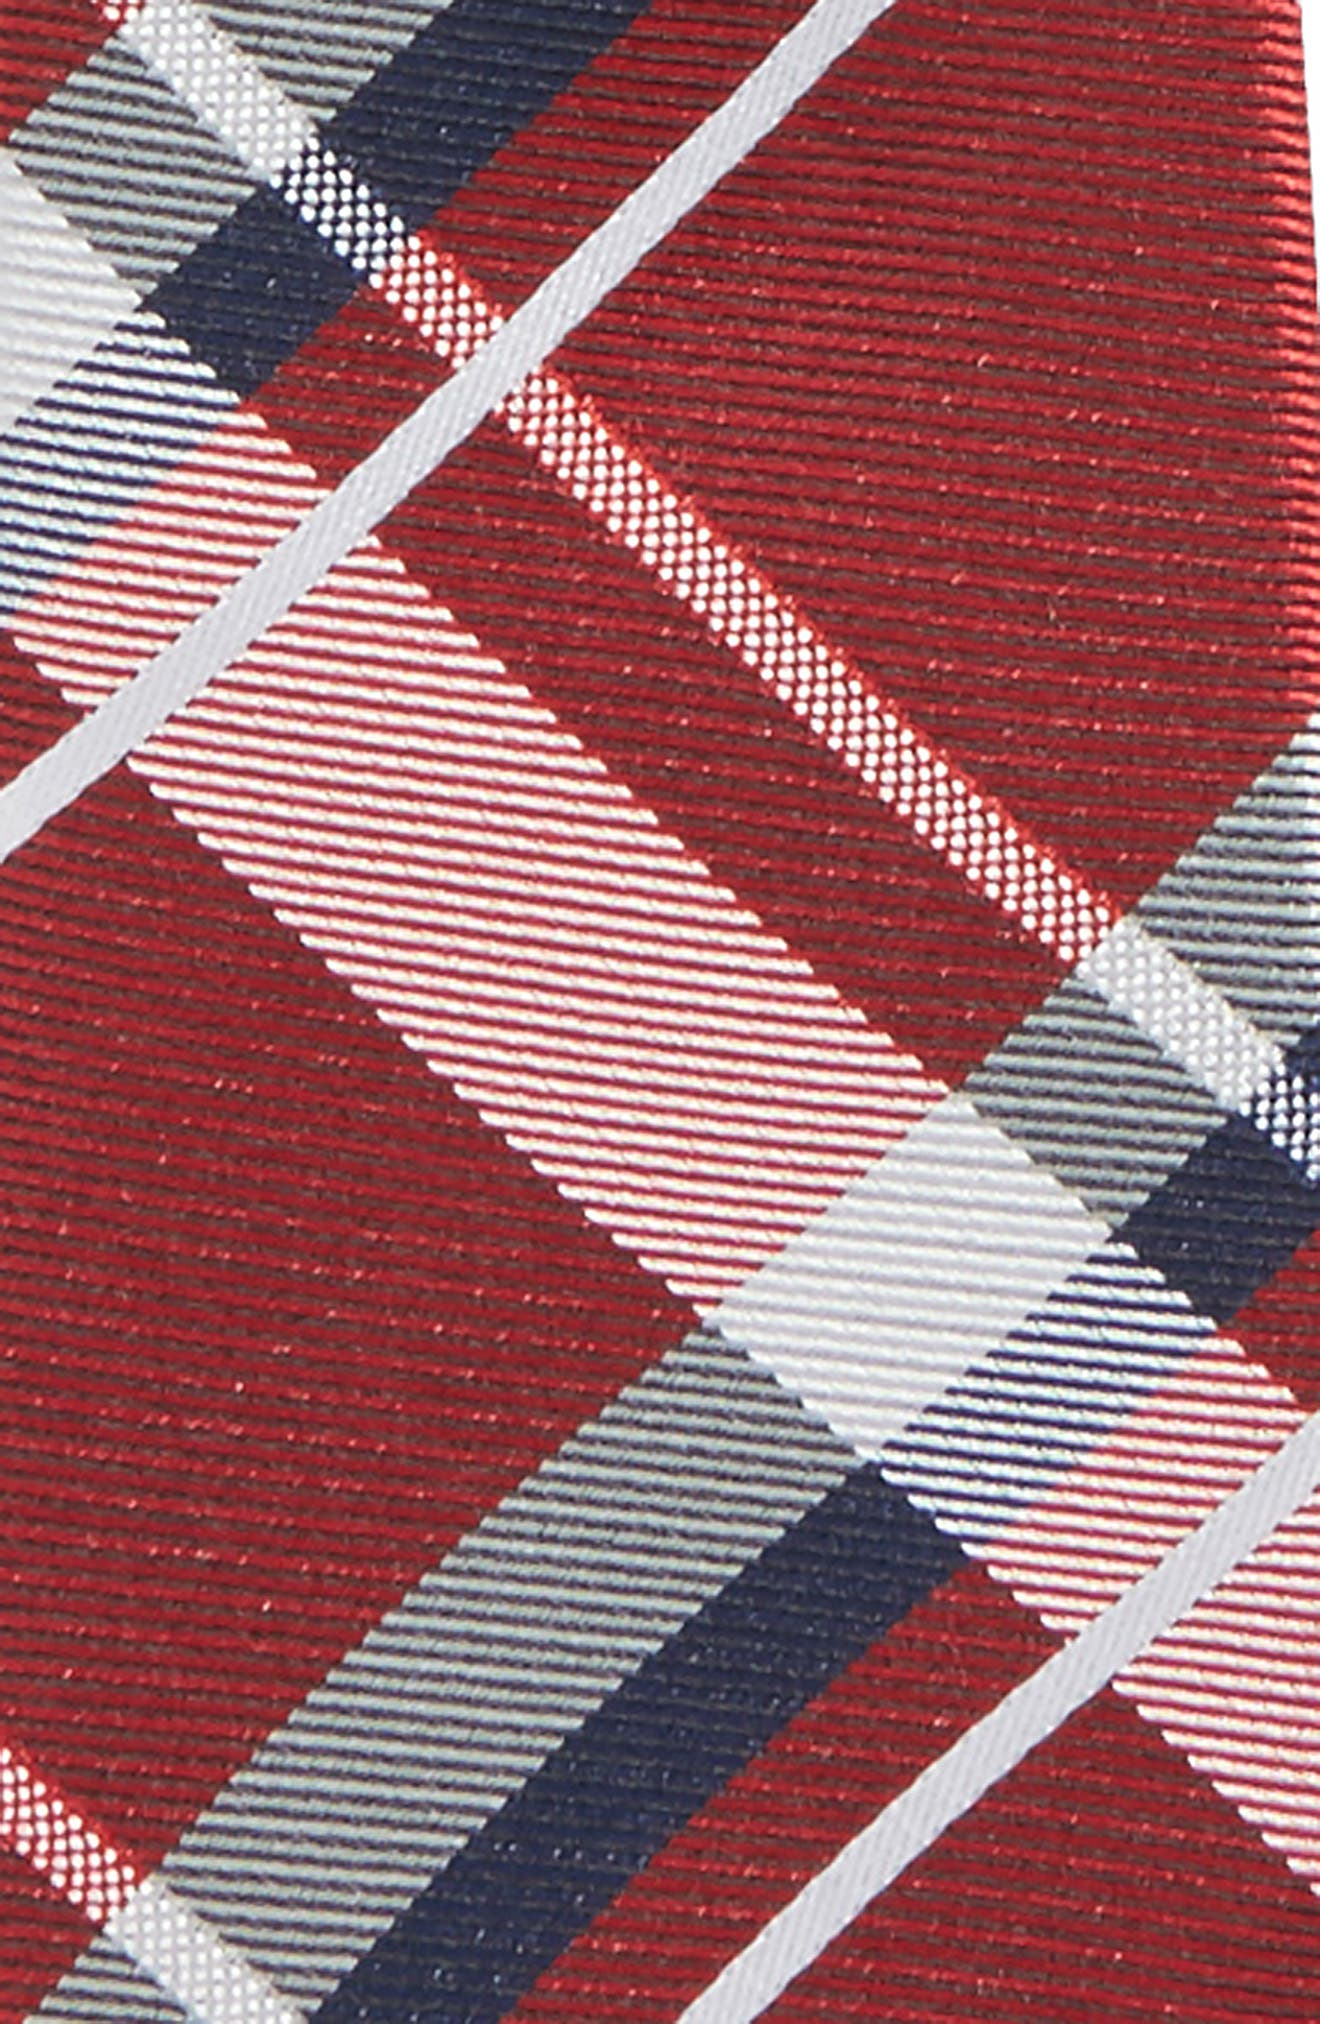 Plaid Silk Zip Tie,                             Alternate thumbnail 2, color,                             Red- Navy